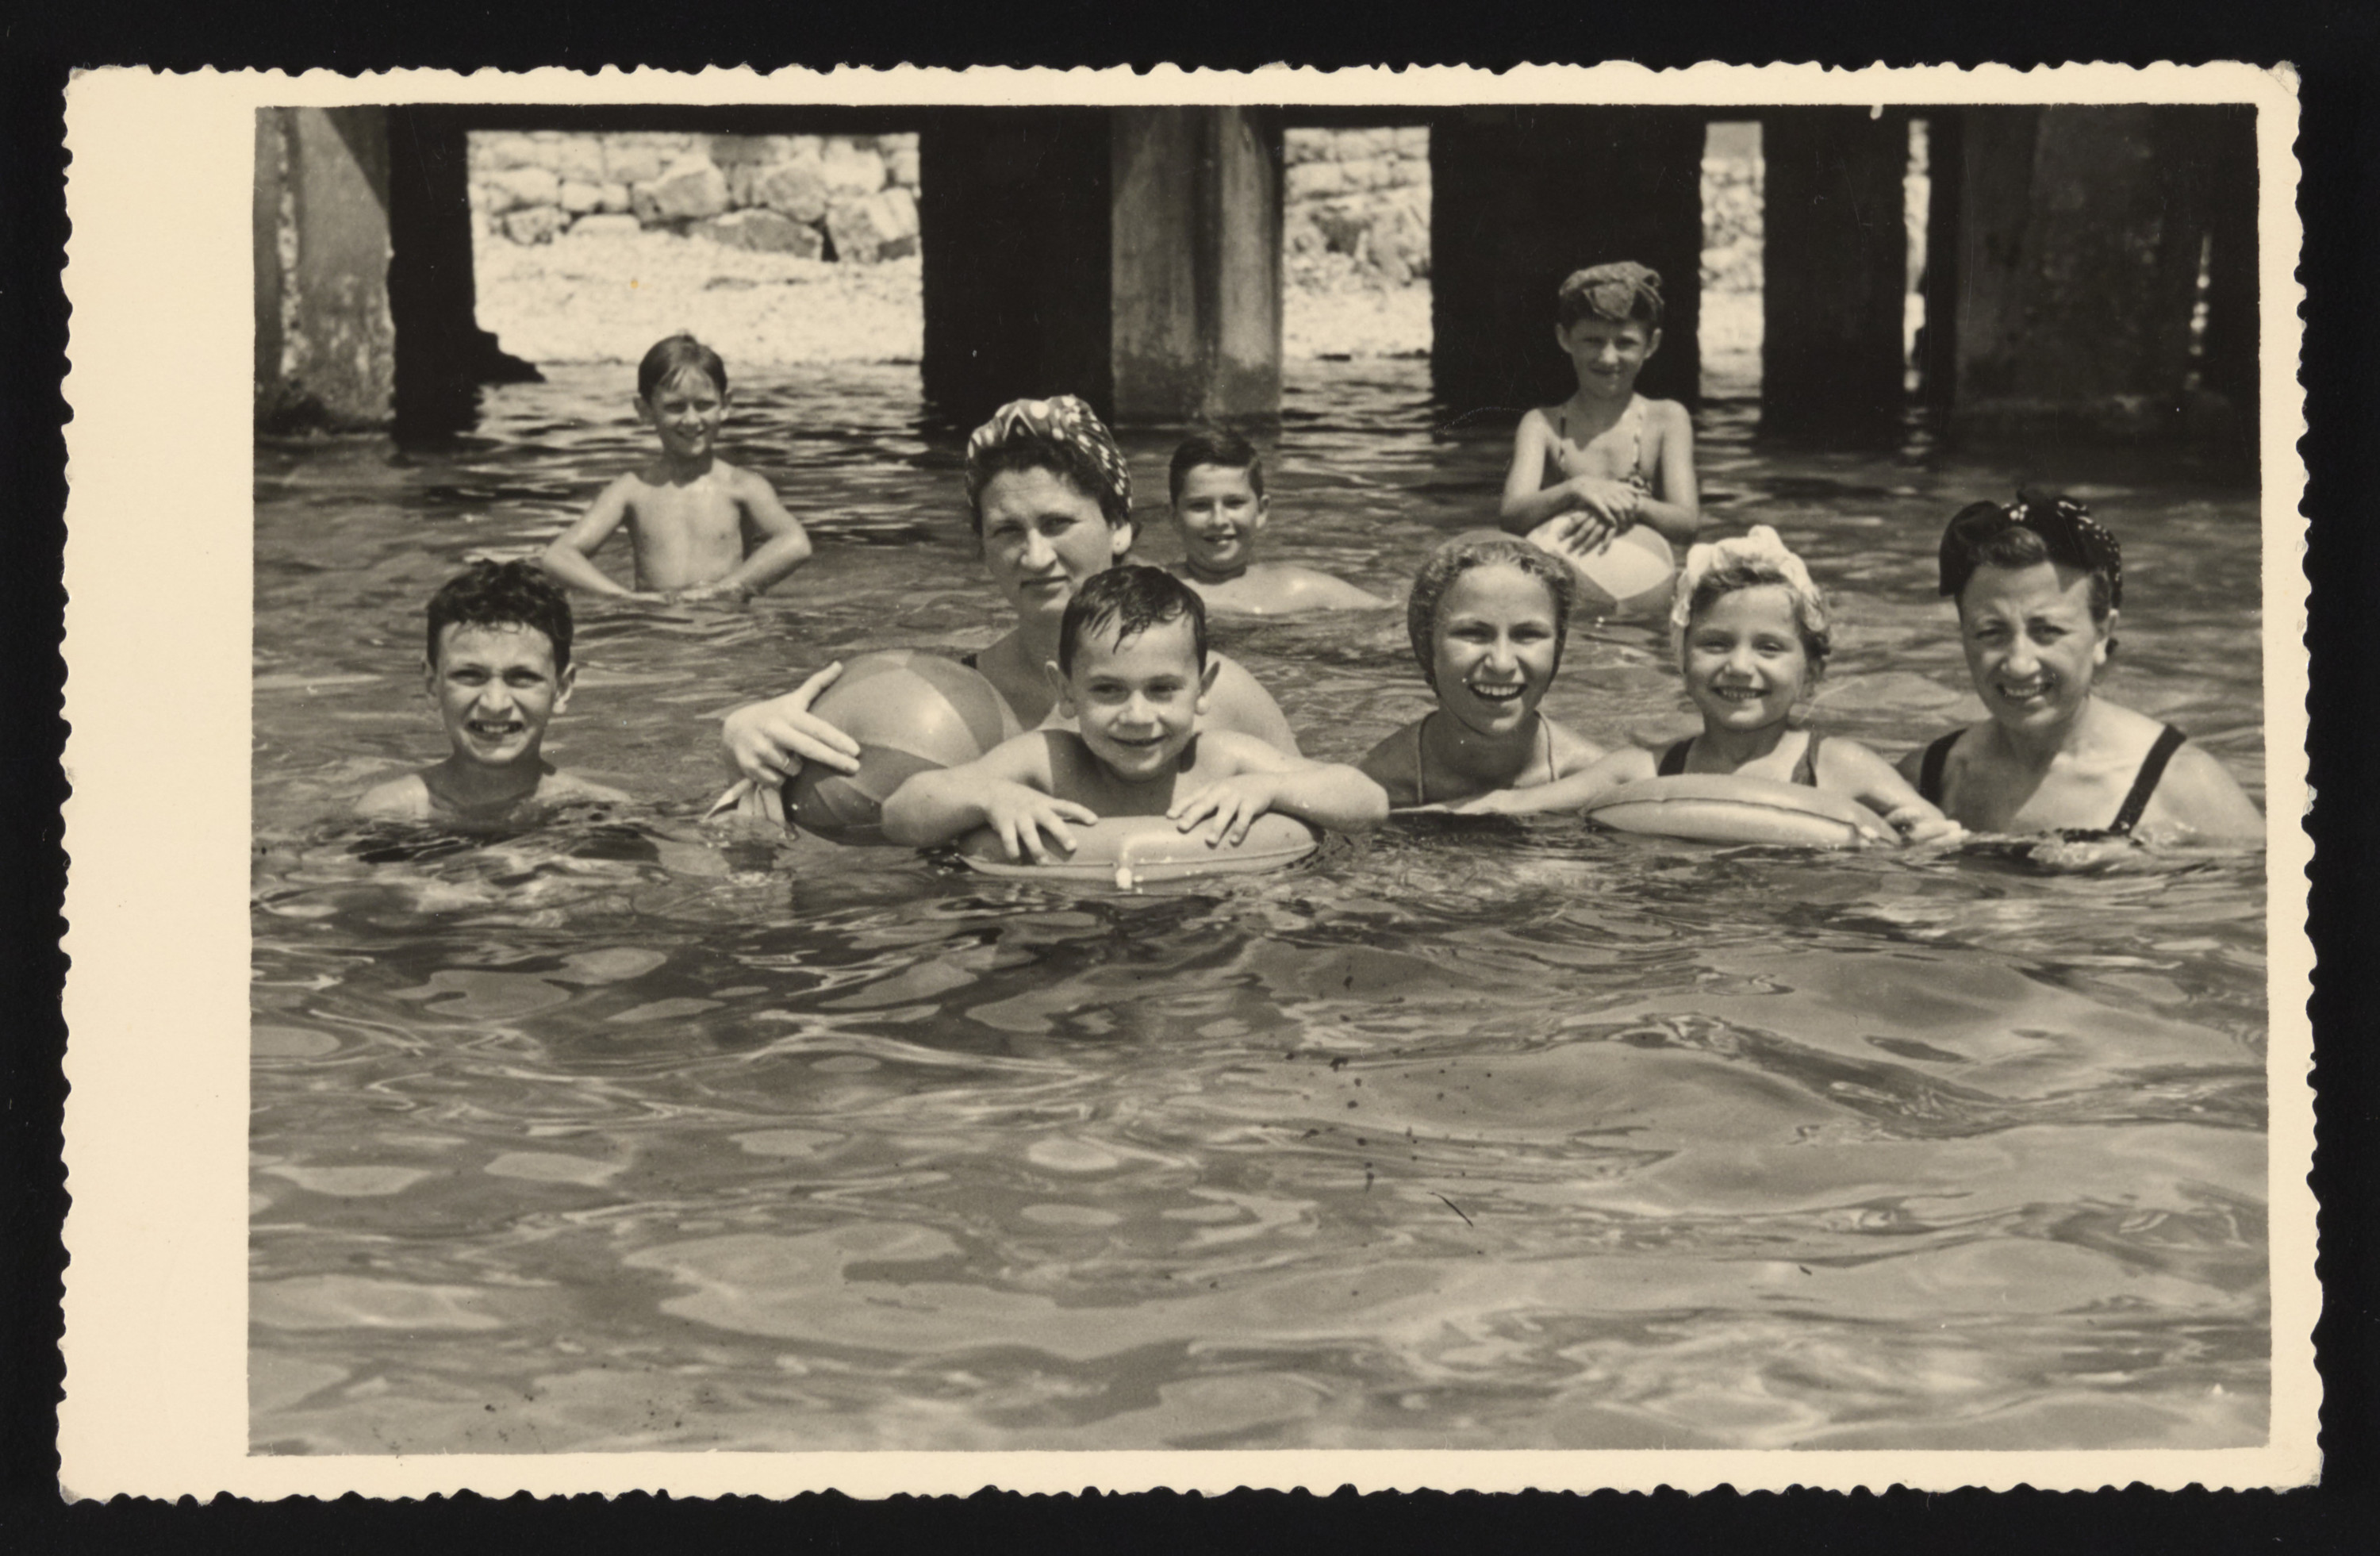 The Hendel family and their cousins go for a swim.